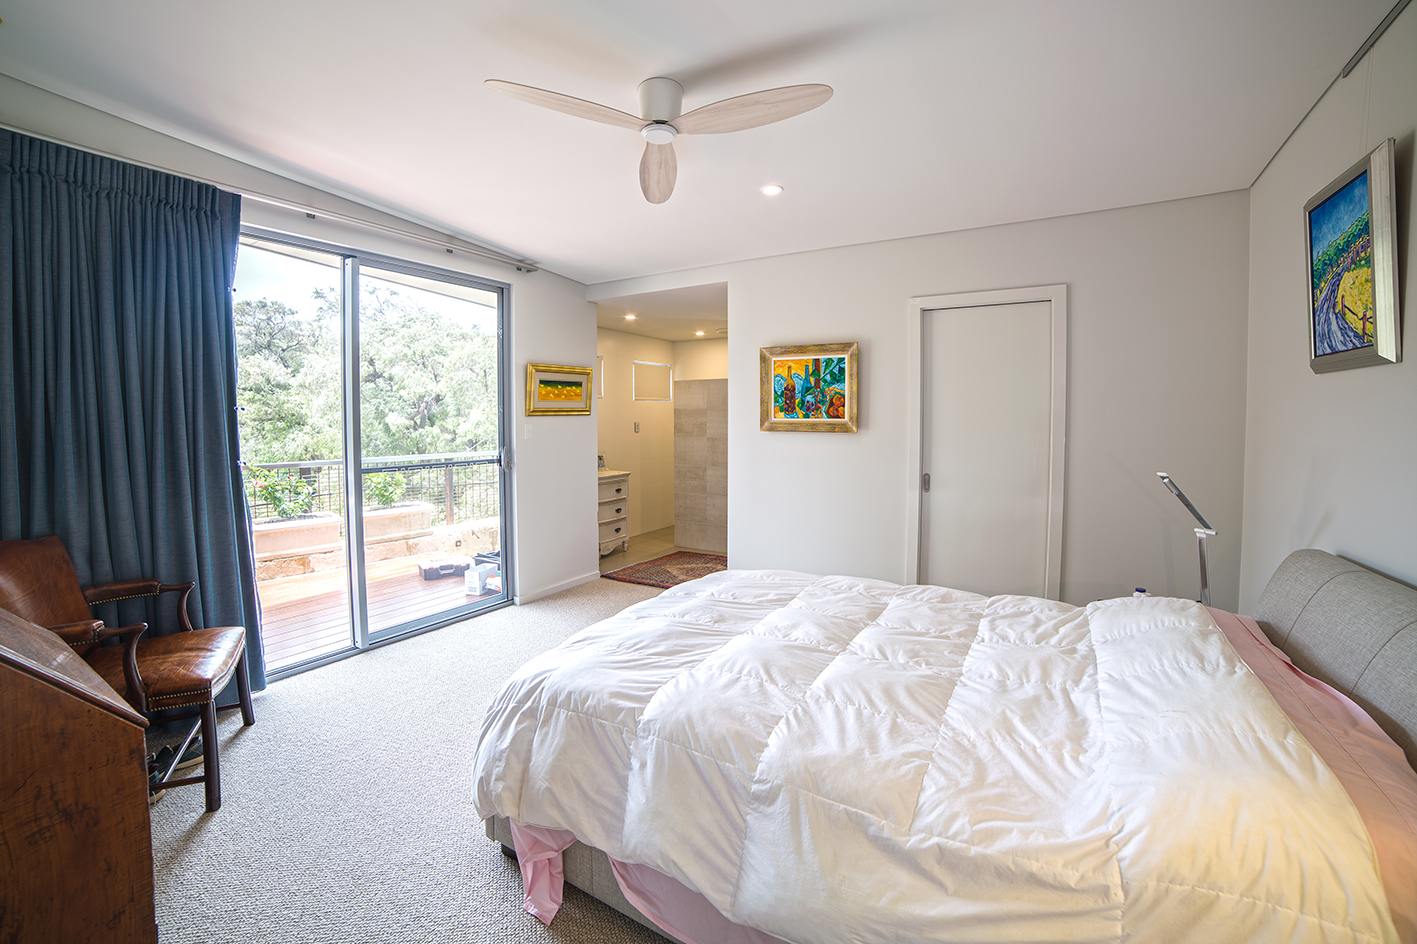 27a Georgette Way Prevelly  Bedroom